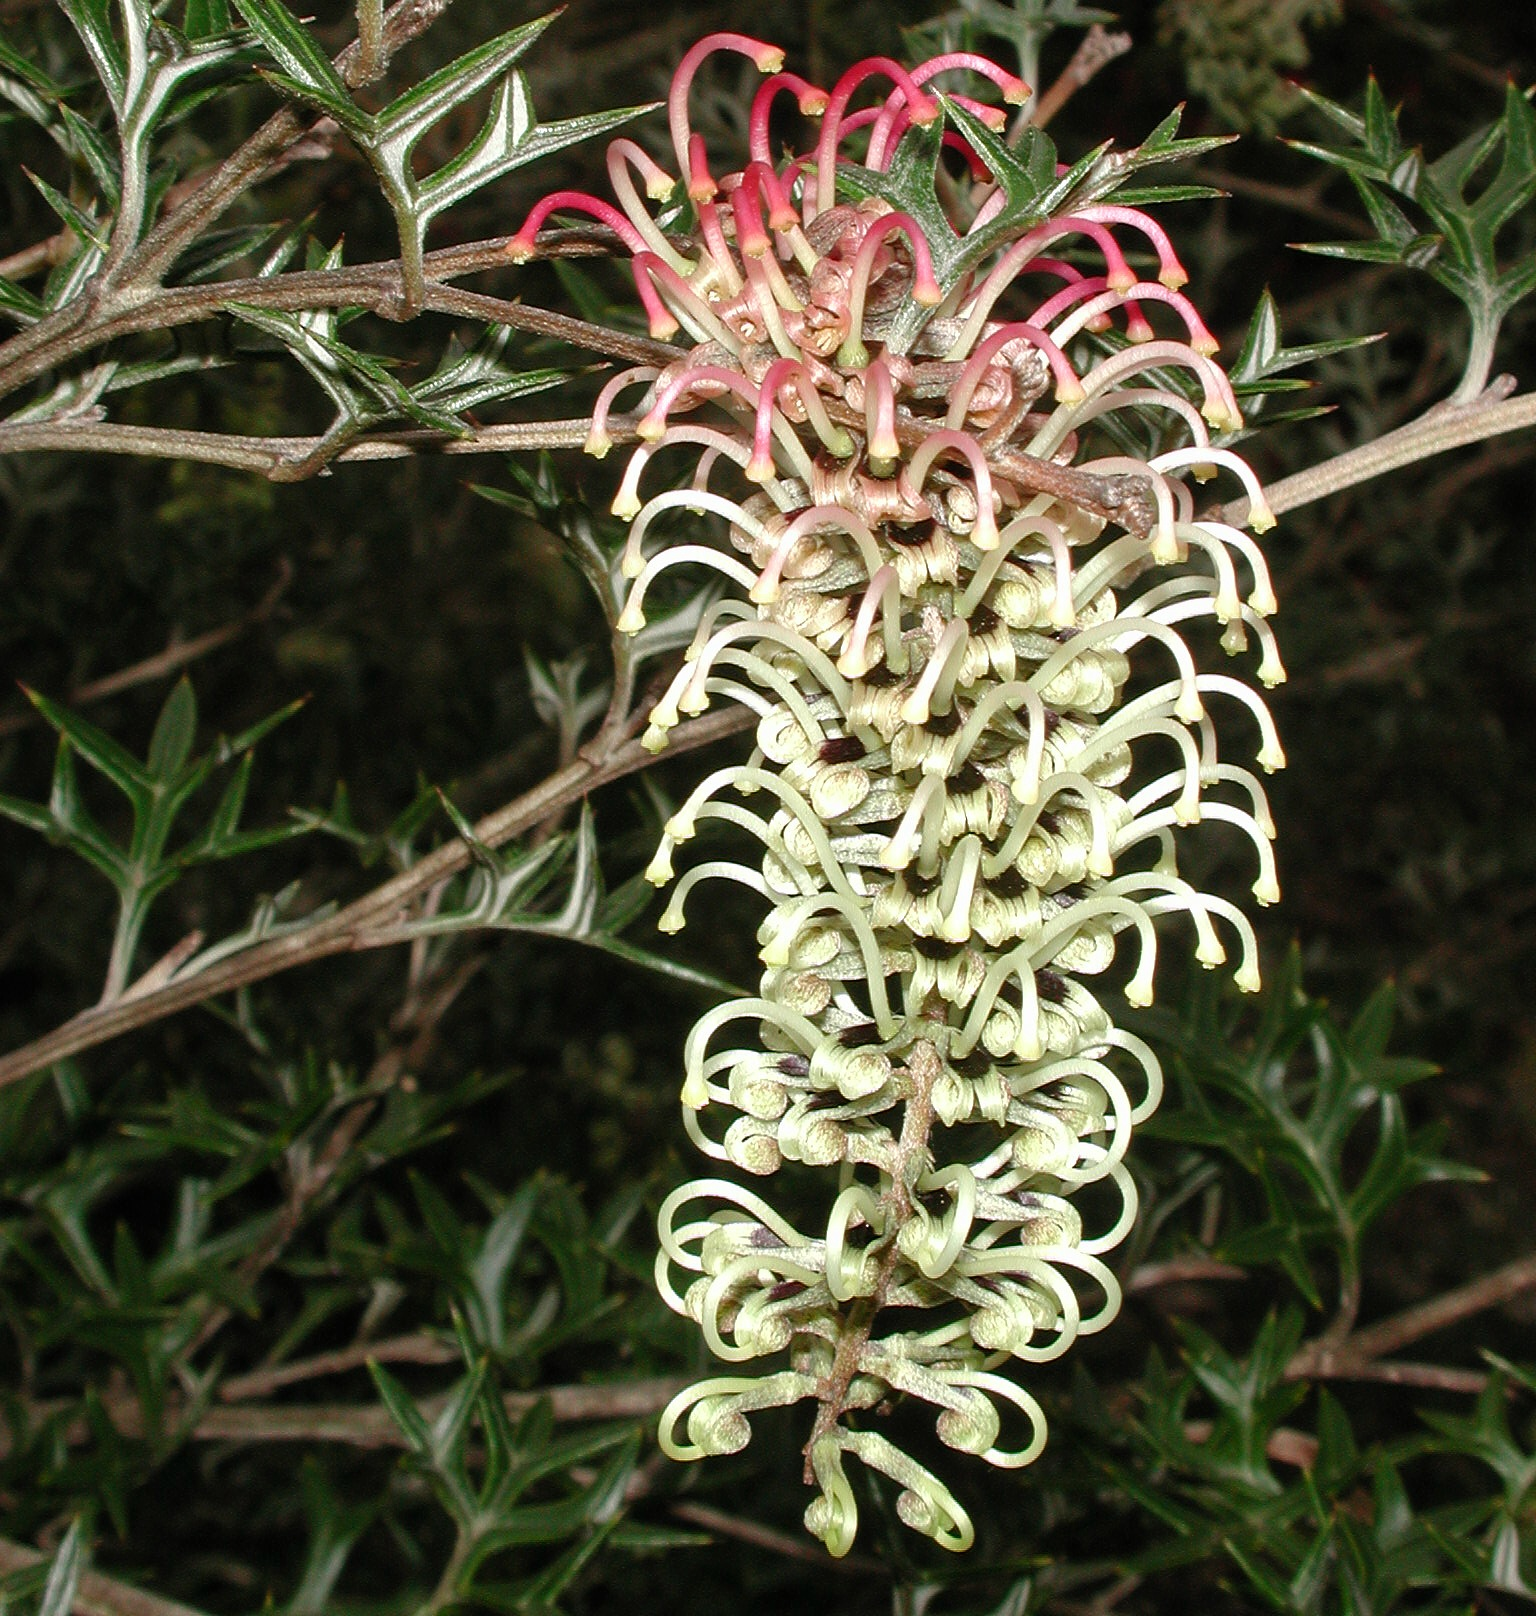 Grevillea willisii